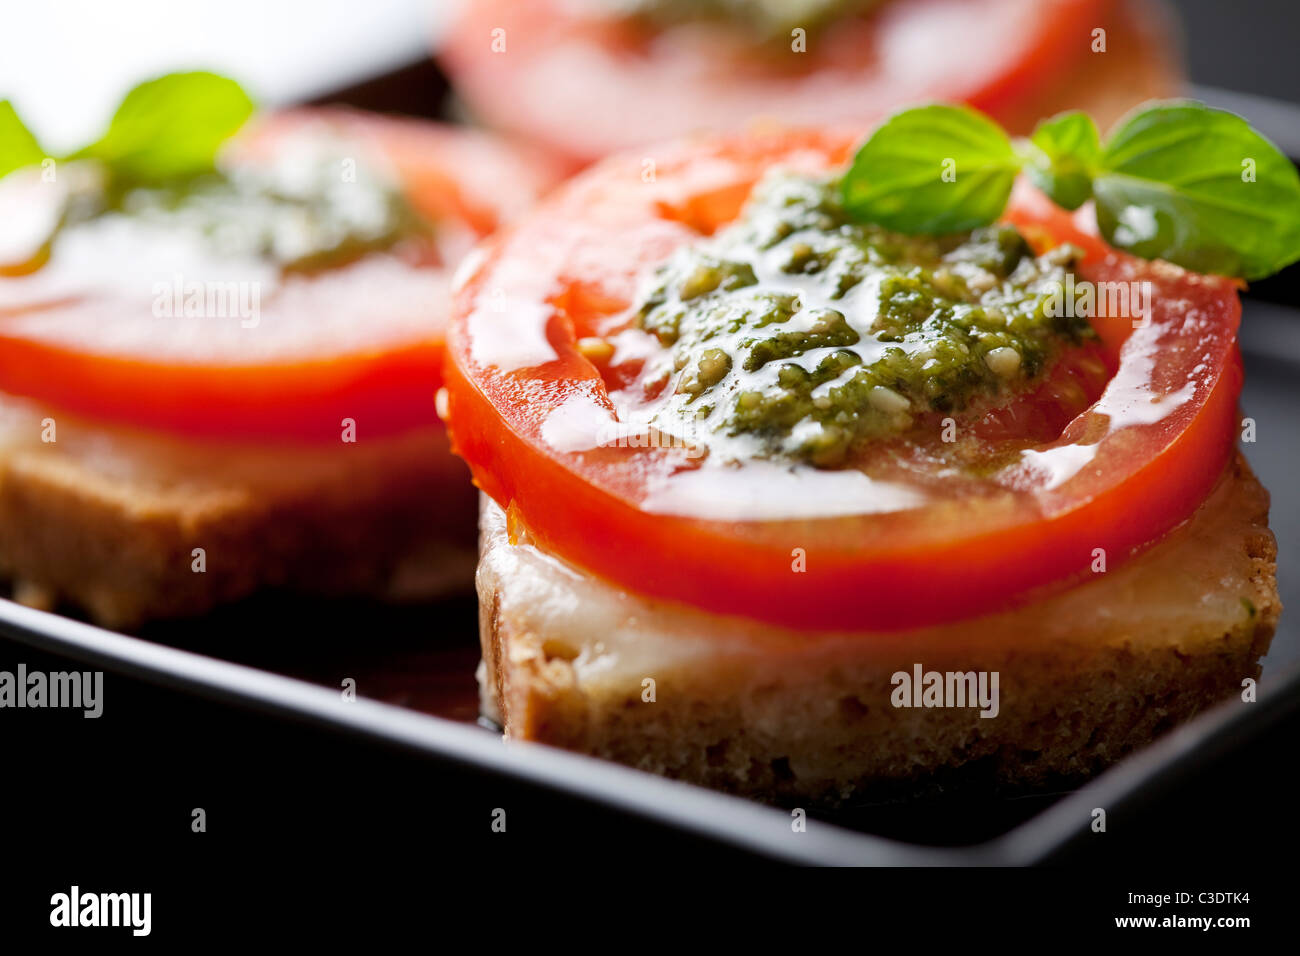 bruschetta - Stock Image